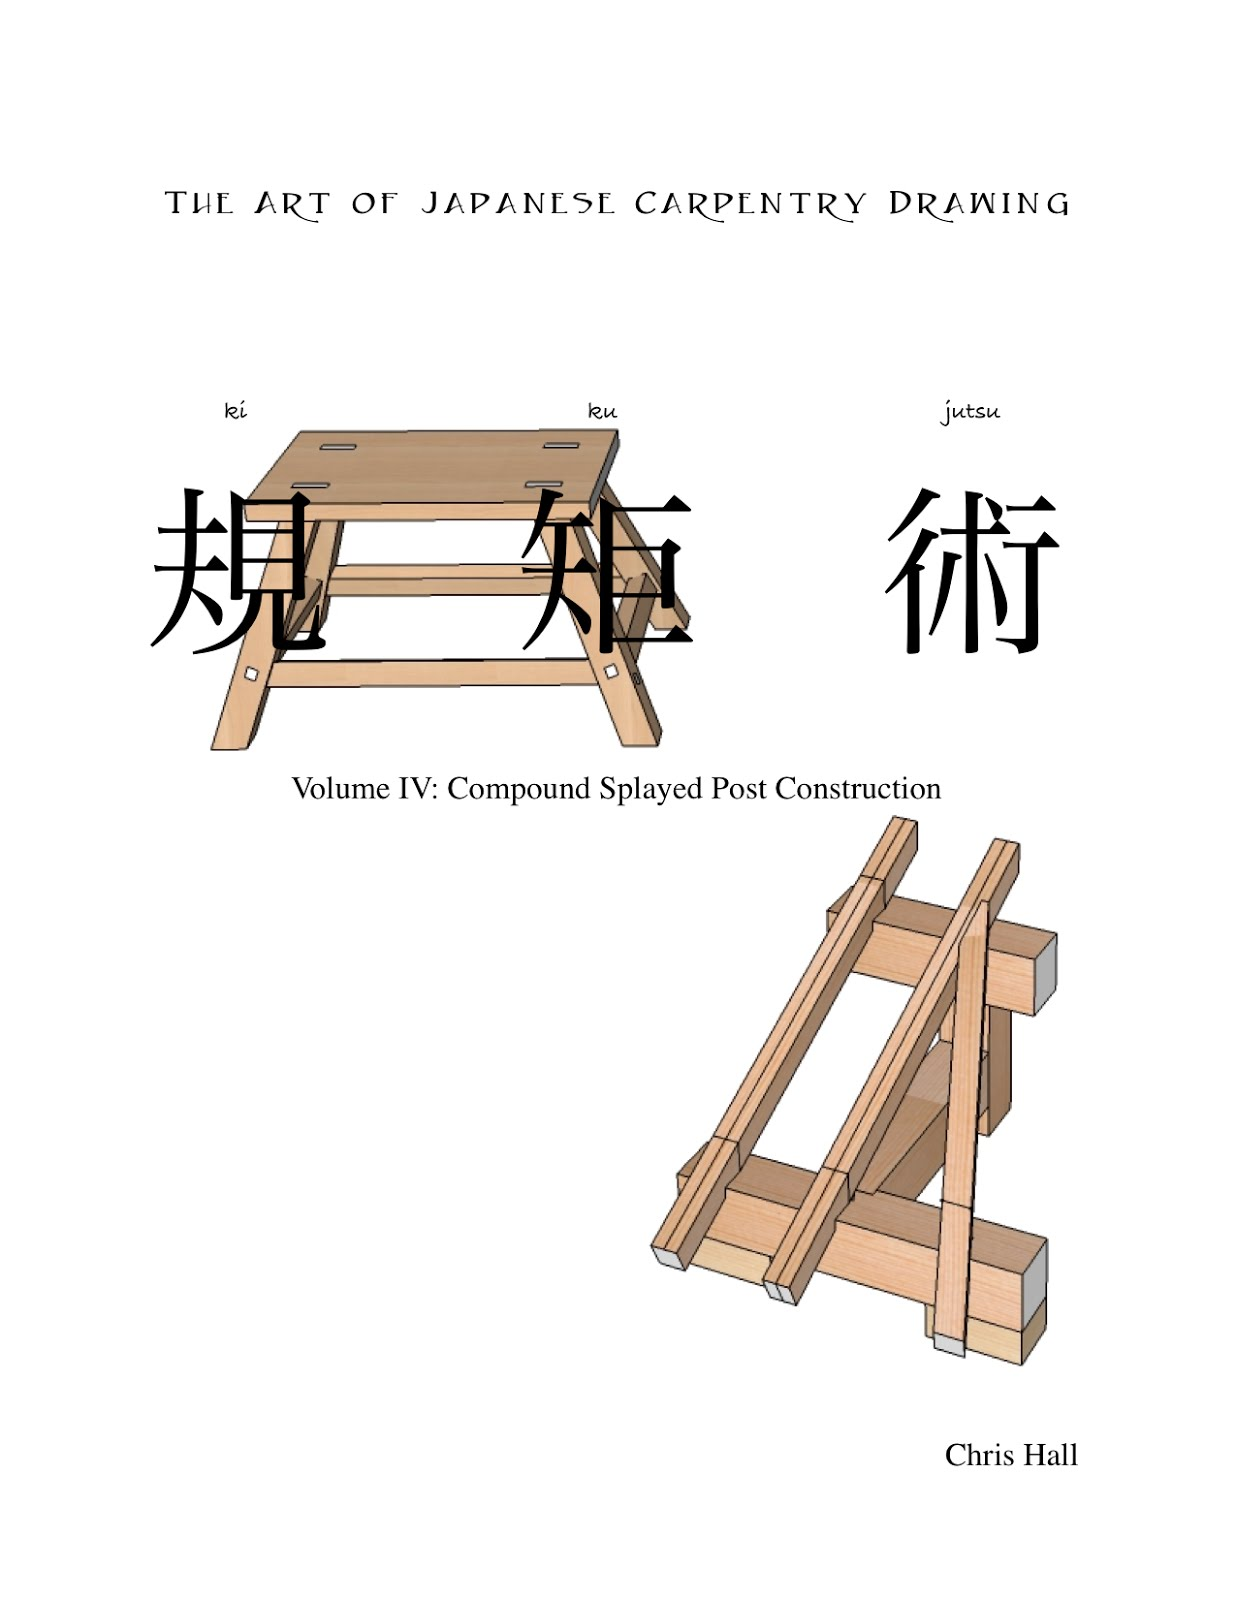 The Art of Japanese Carpentry Drawing, Volume IV